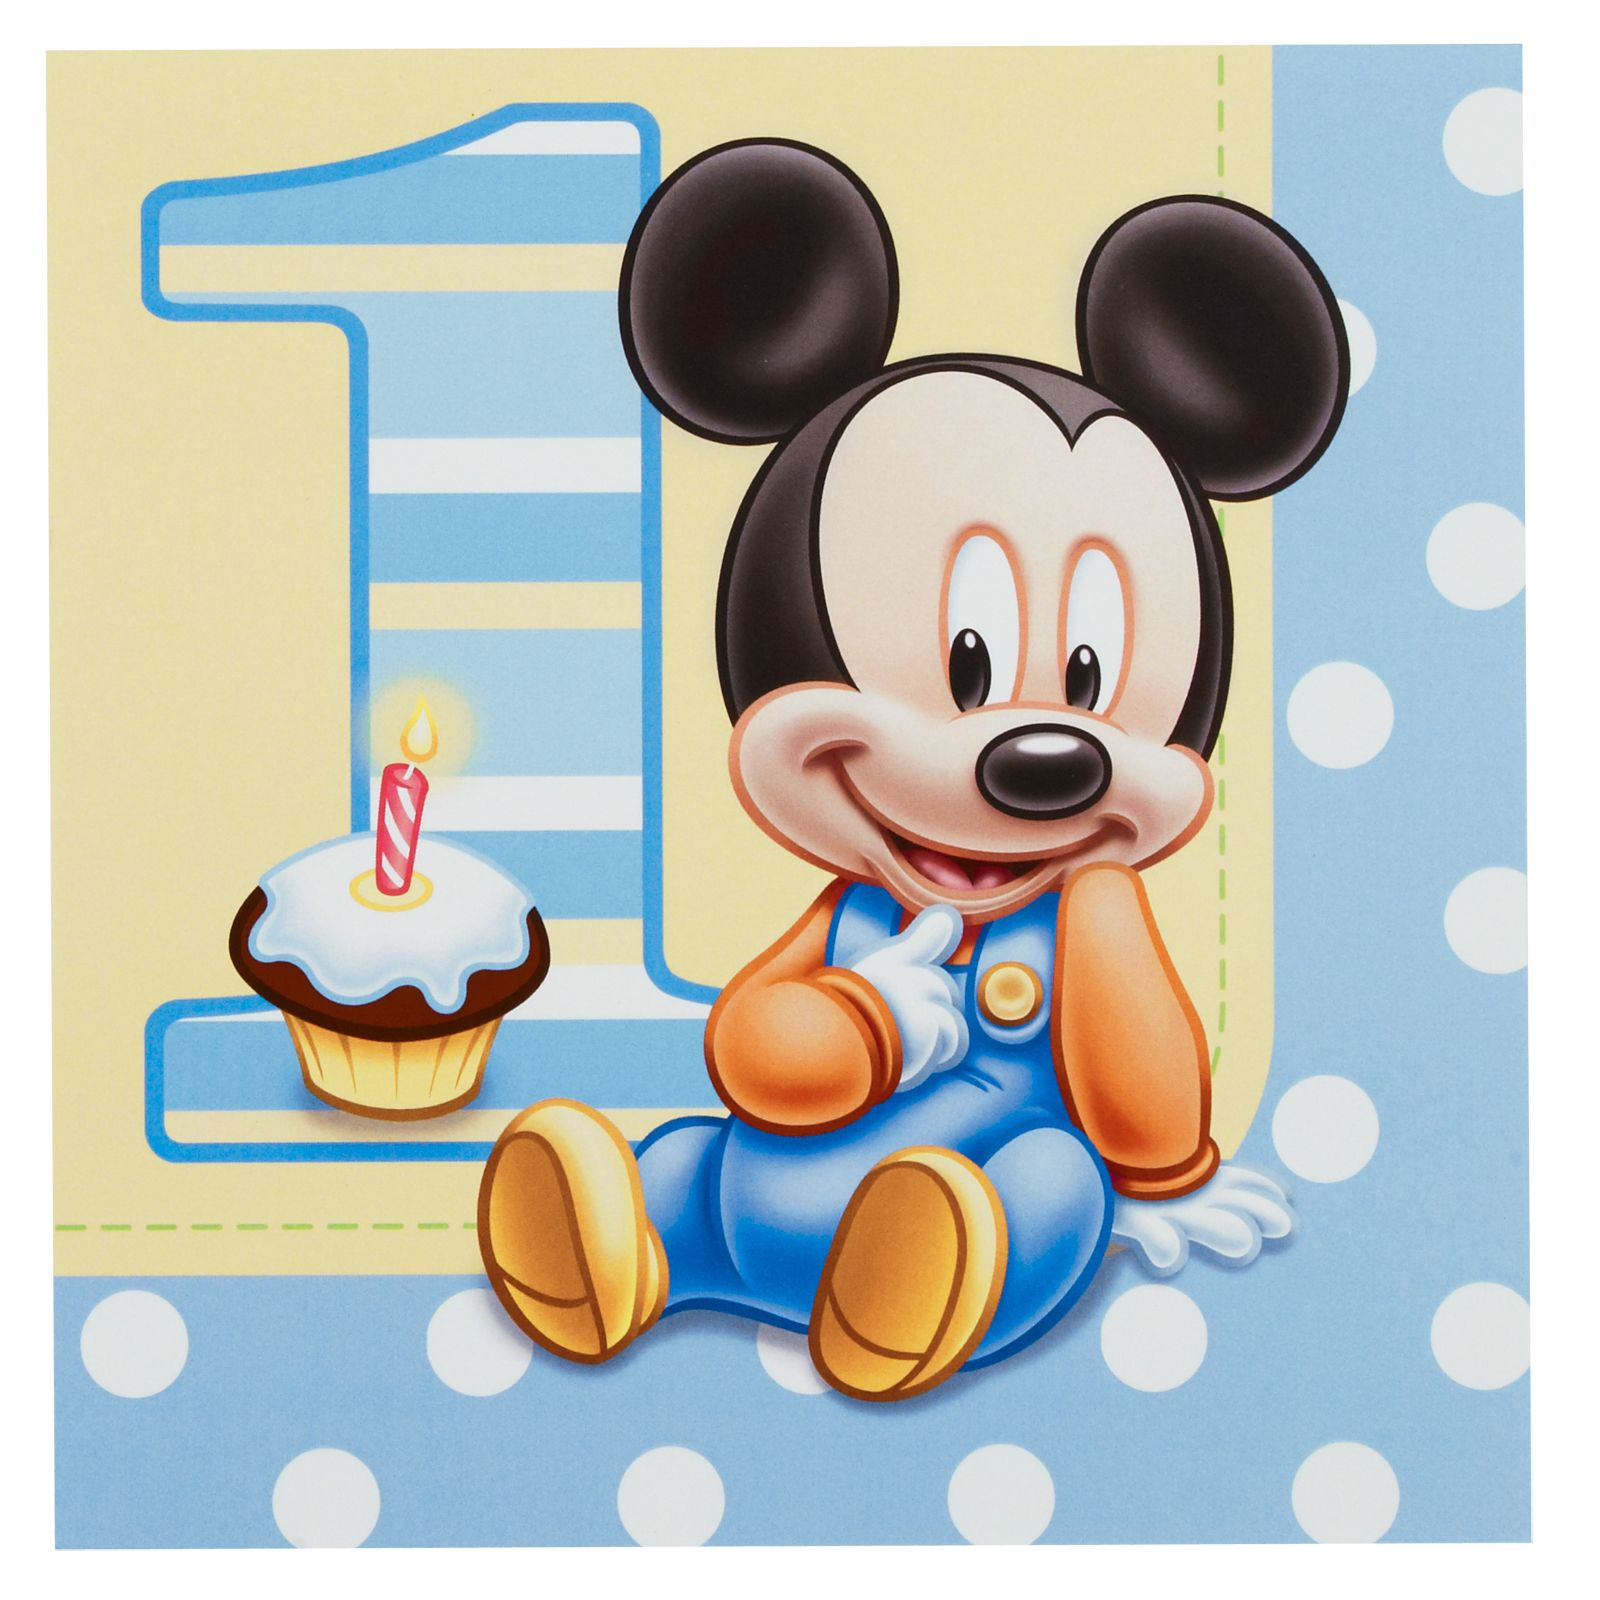 Baby Mickey Mouse 1st Birthday.Baby Mickey Mouse 1st Birthday Wallpaper Baby Mickey Mouse